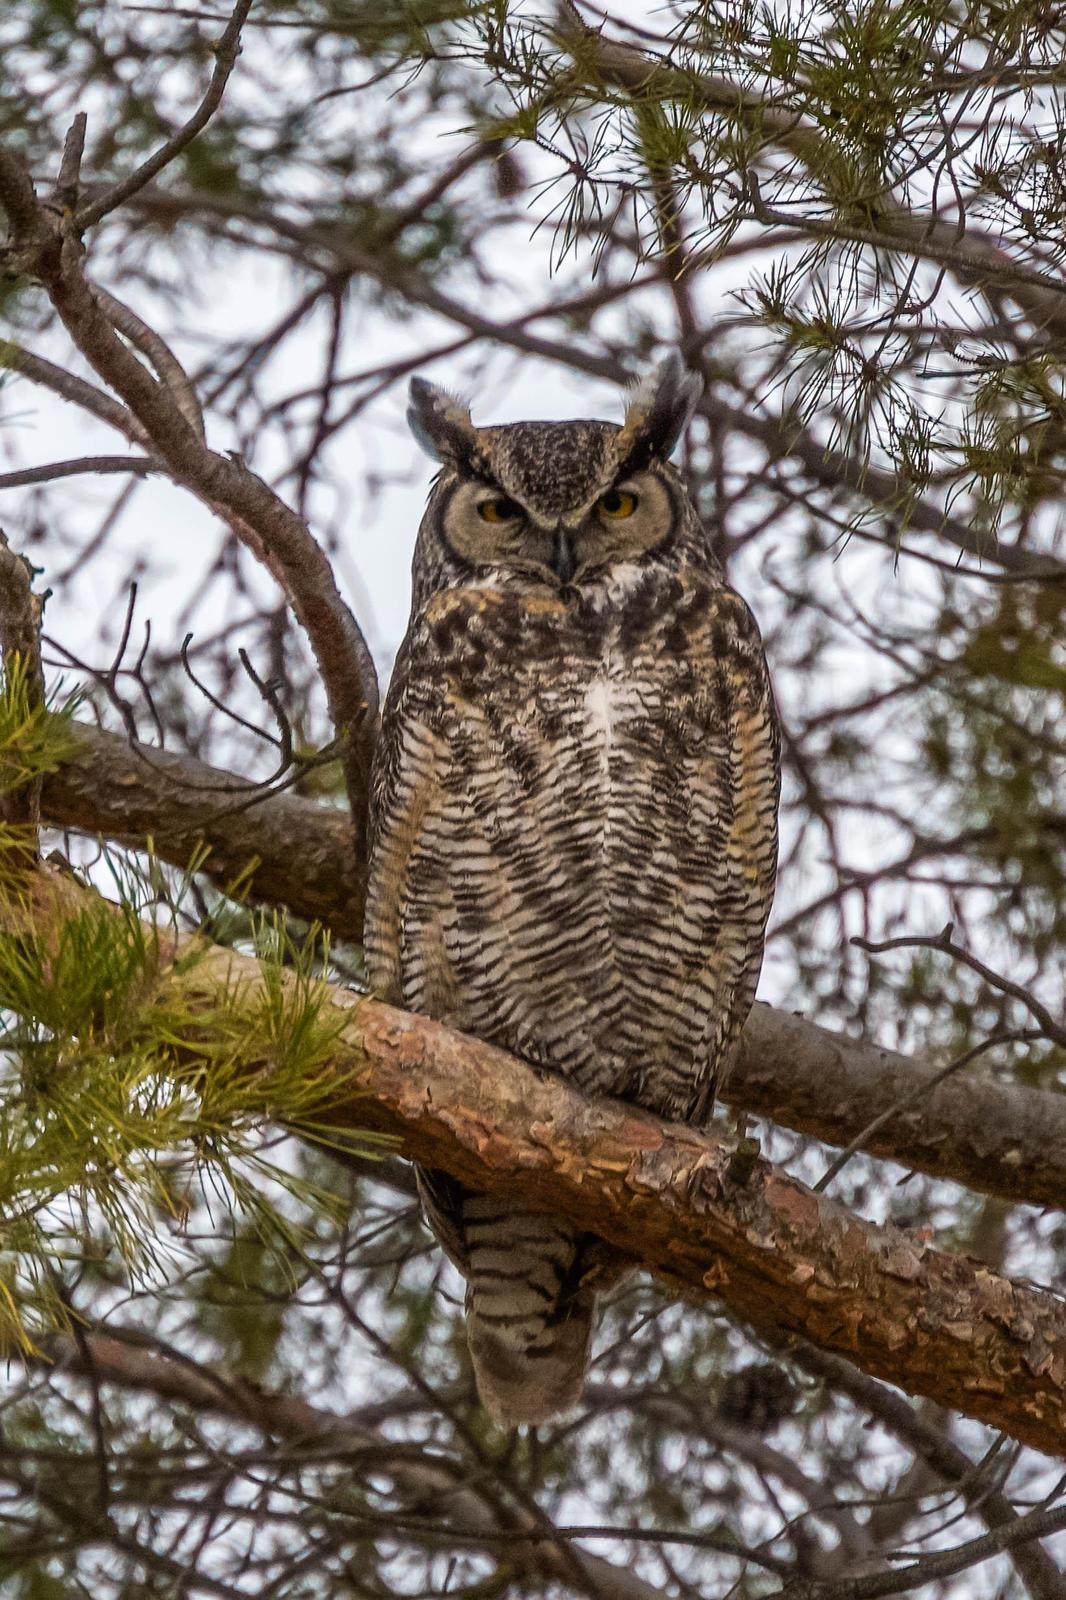 Great Horned Owl Photo by Scott Yerges